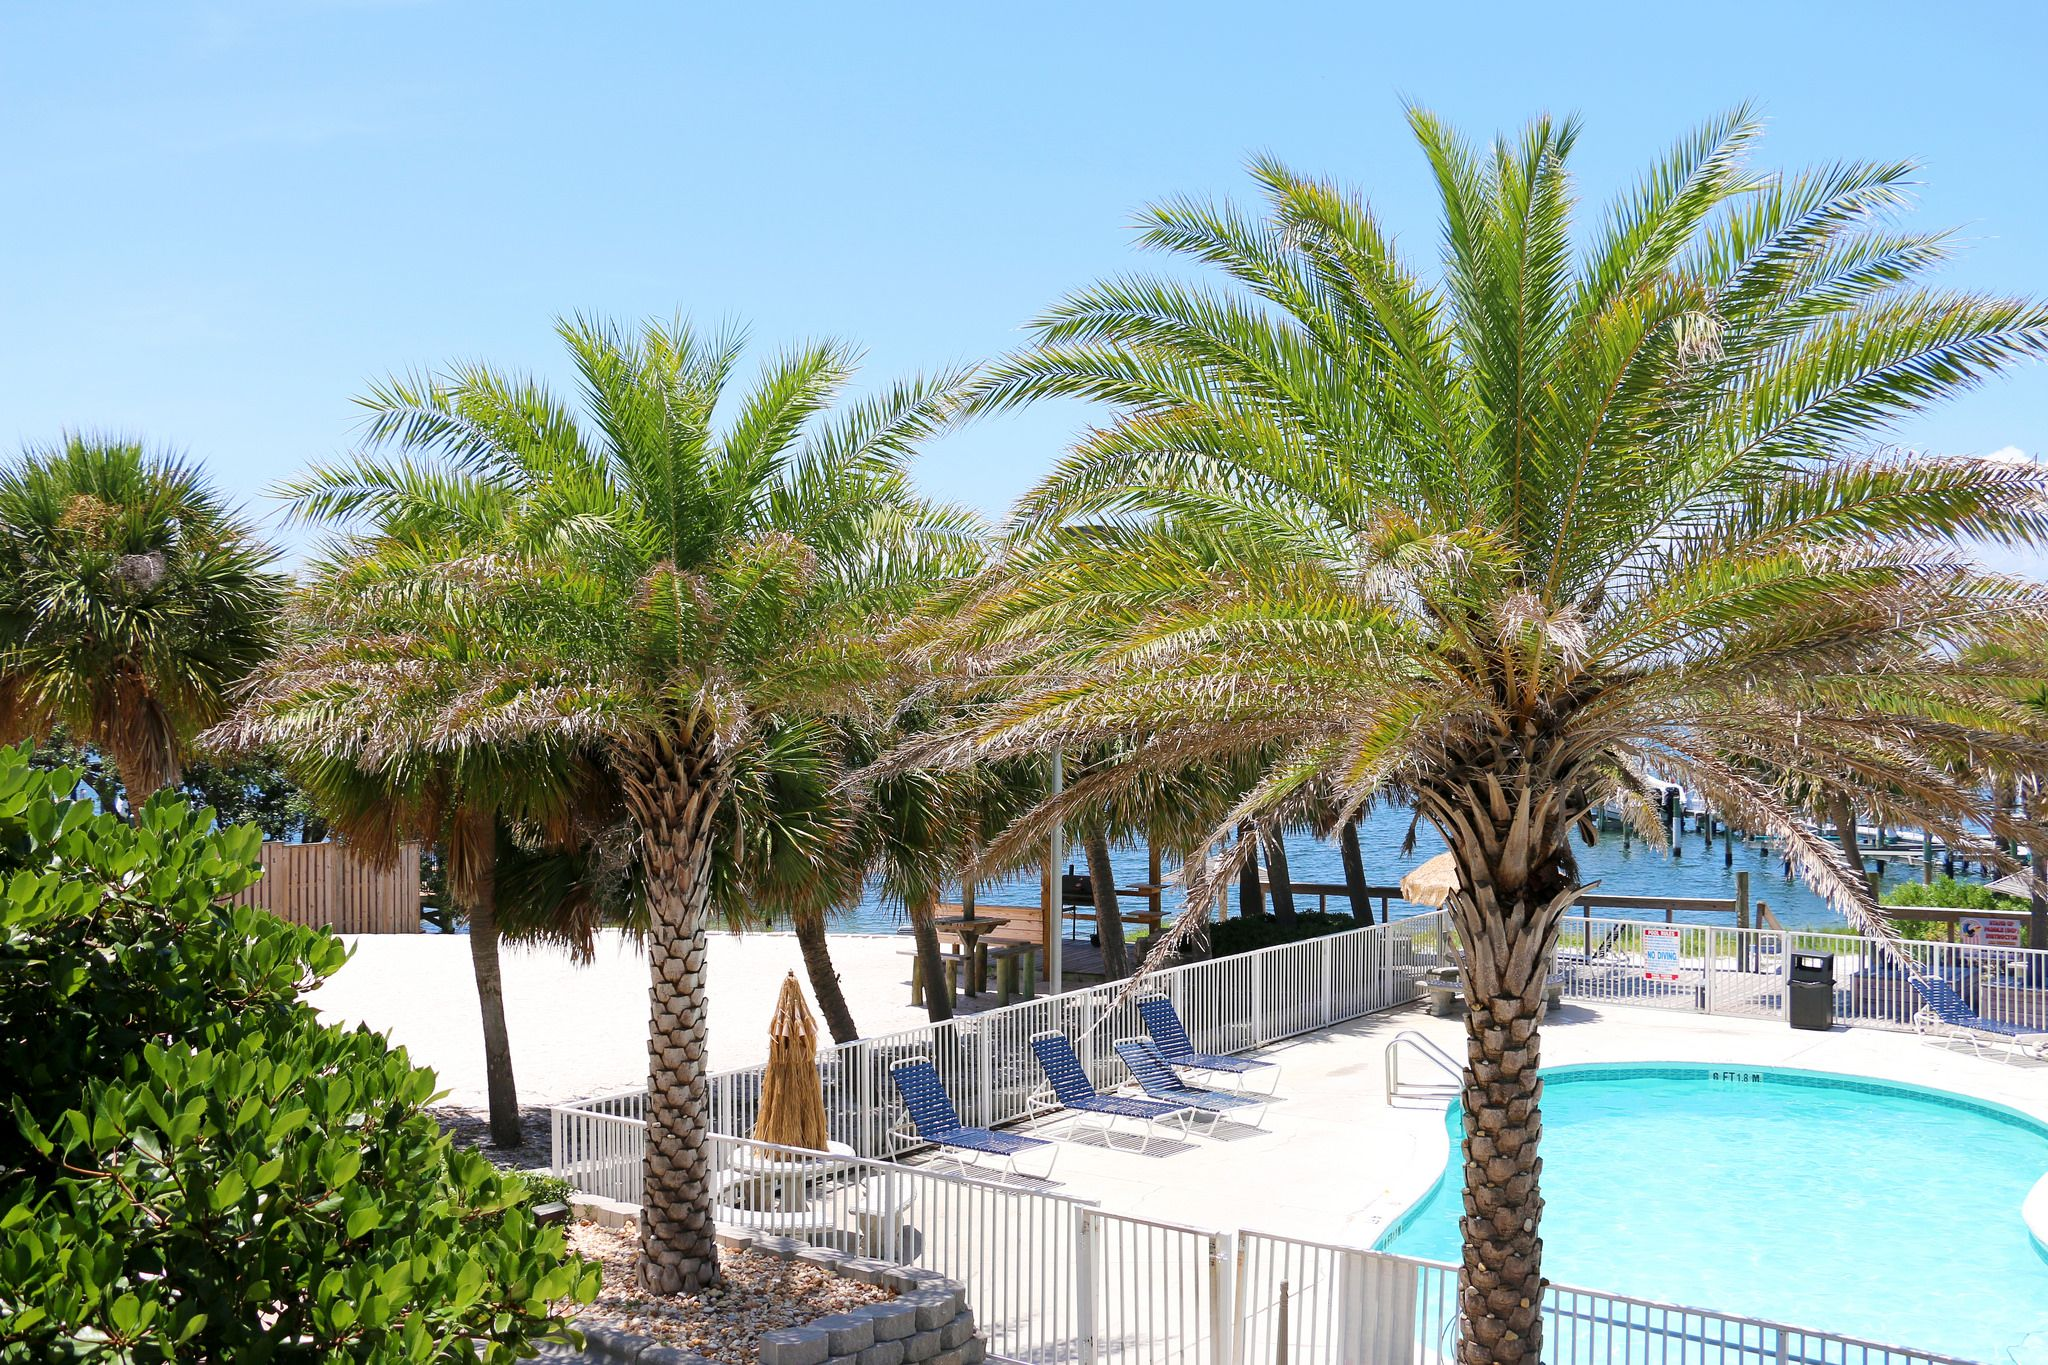 Pin By Innisfree Hotels On Surf Sand Pensacola Beach Hotels Beach Hotels Pensacola Beach